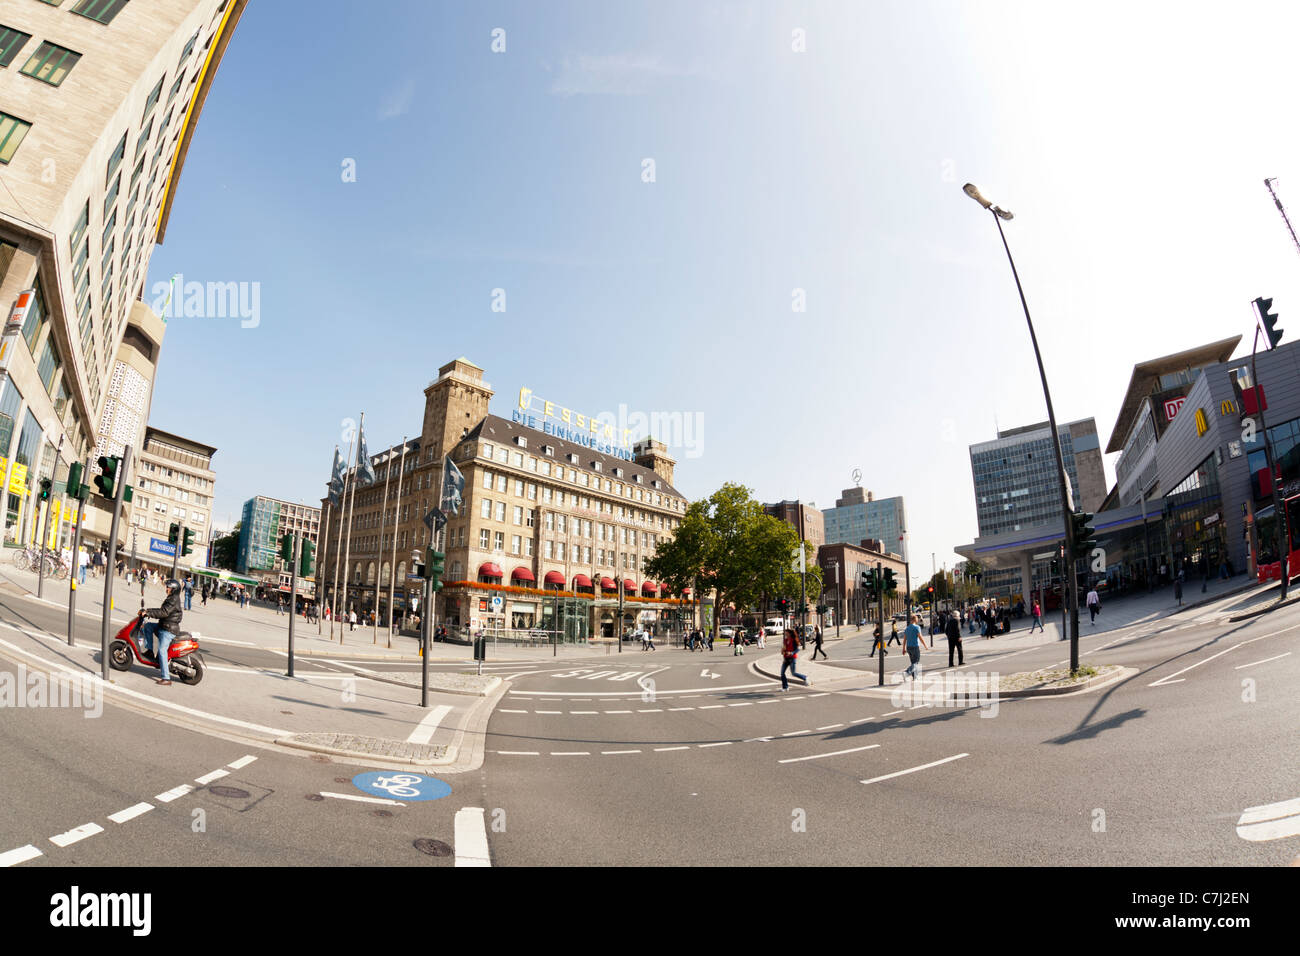 Fisheye view of Essen city center - Stock Image